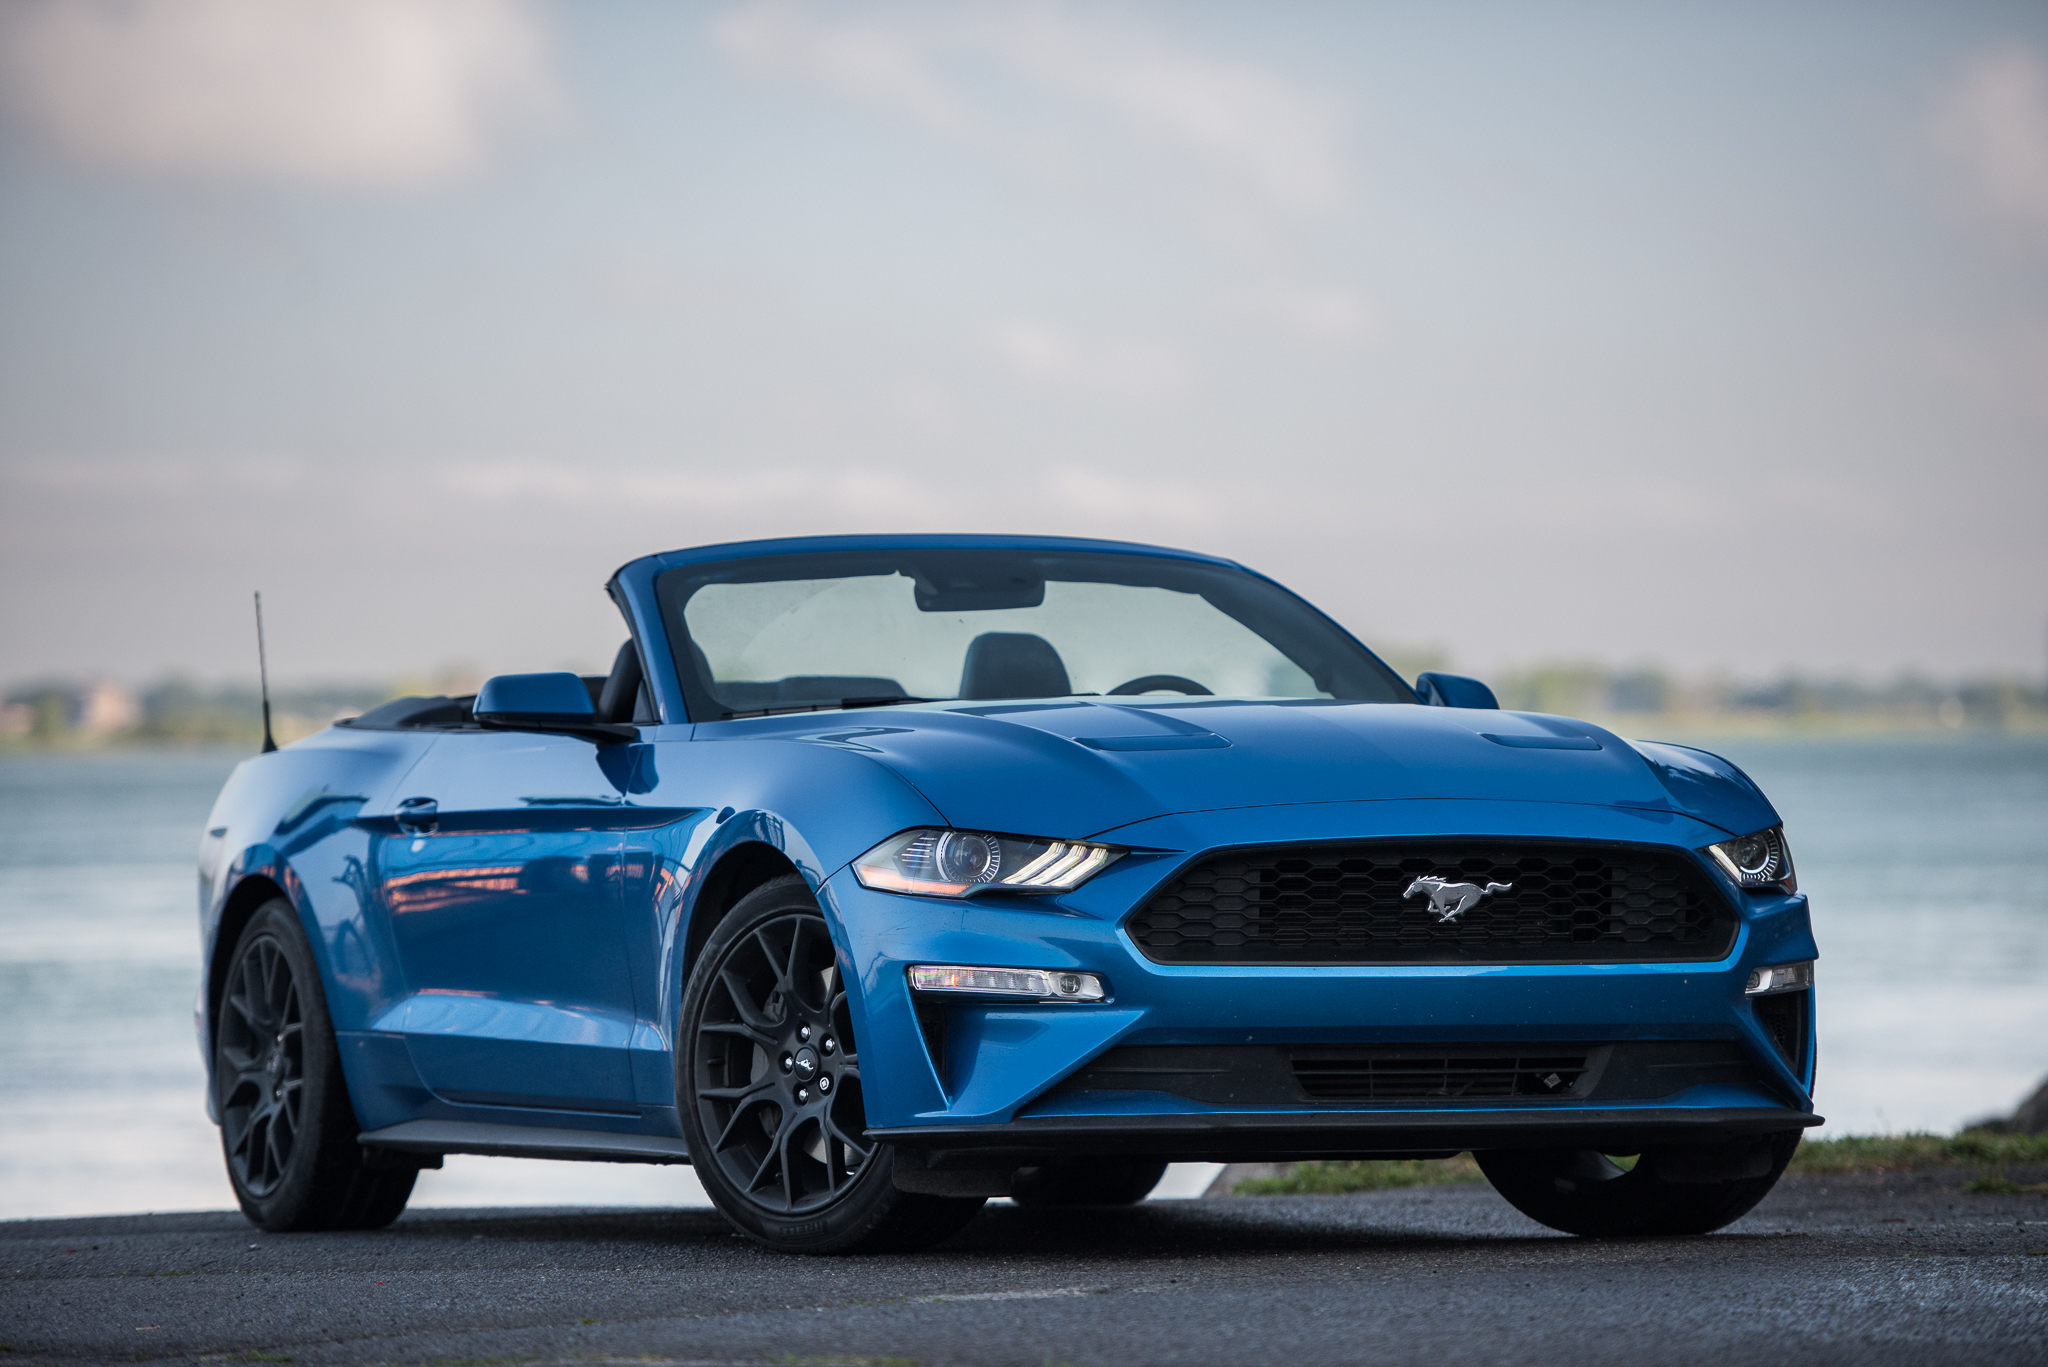 2019 Ford Mustang Convertible Is The Ideal Summer Cruiser